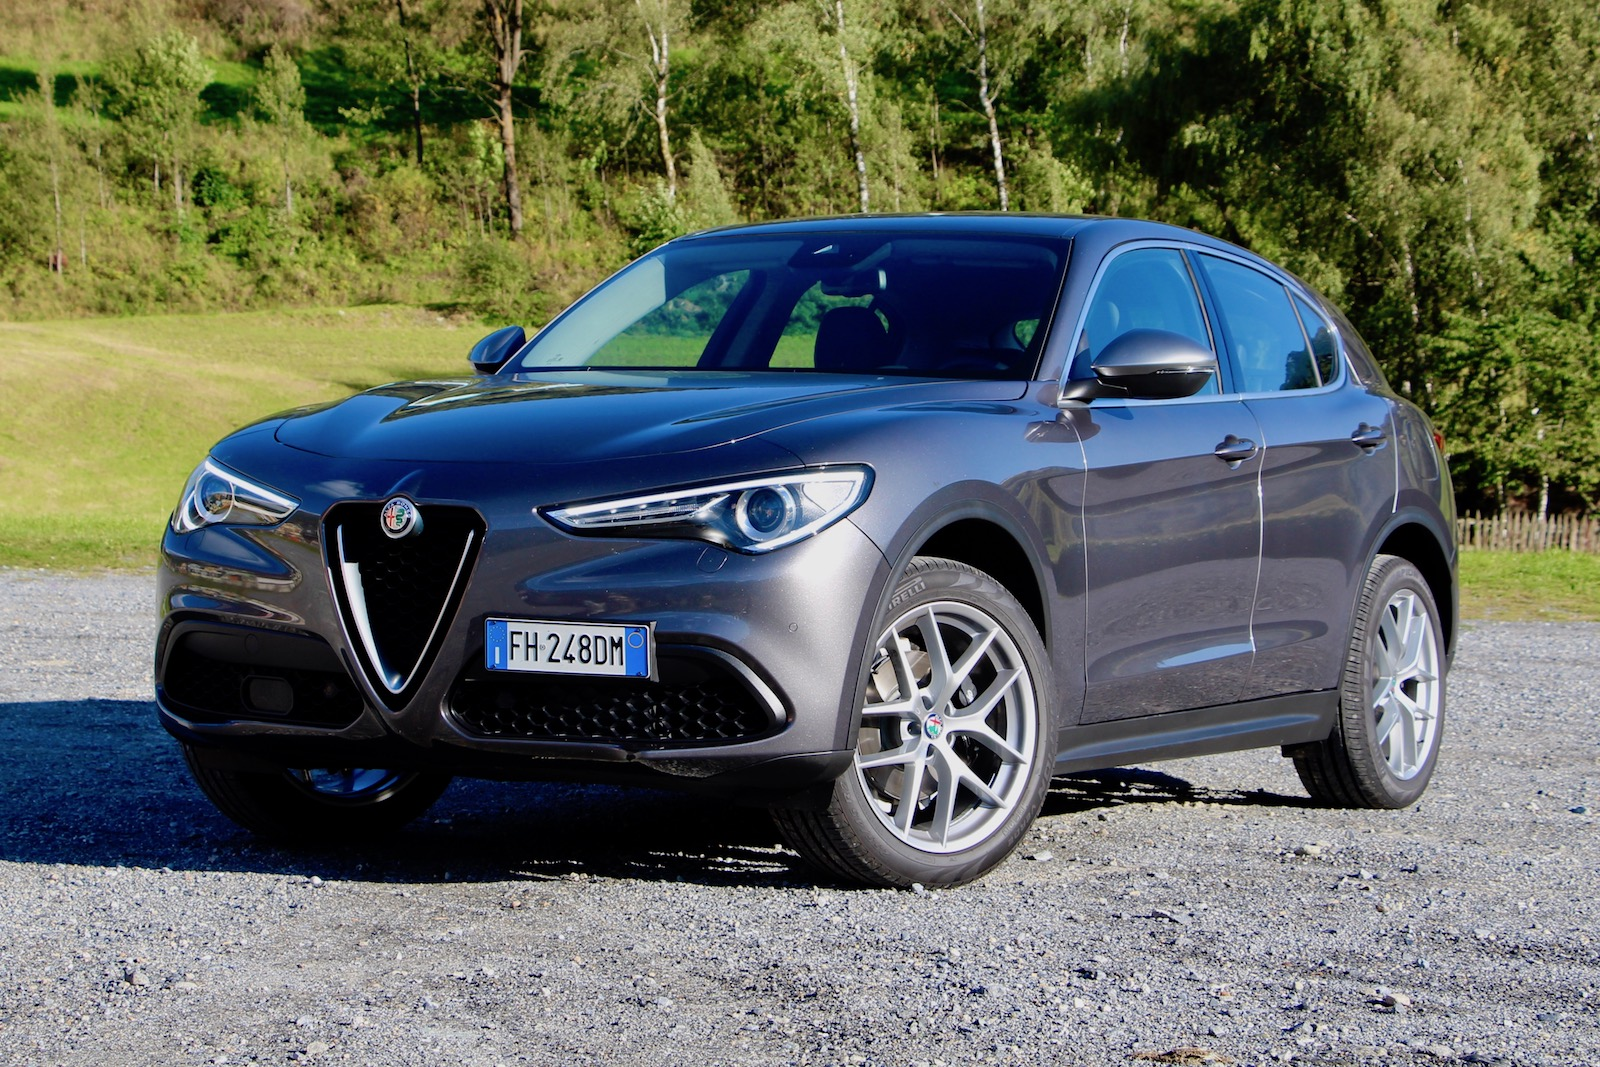 2018 alfa romeo stelvio first drive review news. Black Bedroom Furniture Sets. Home Design Ideas